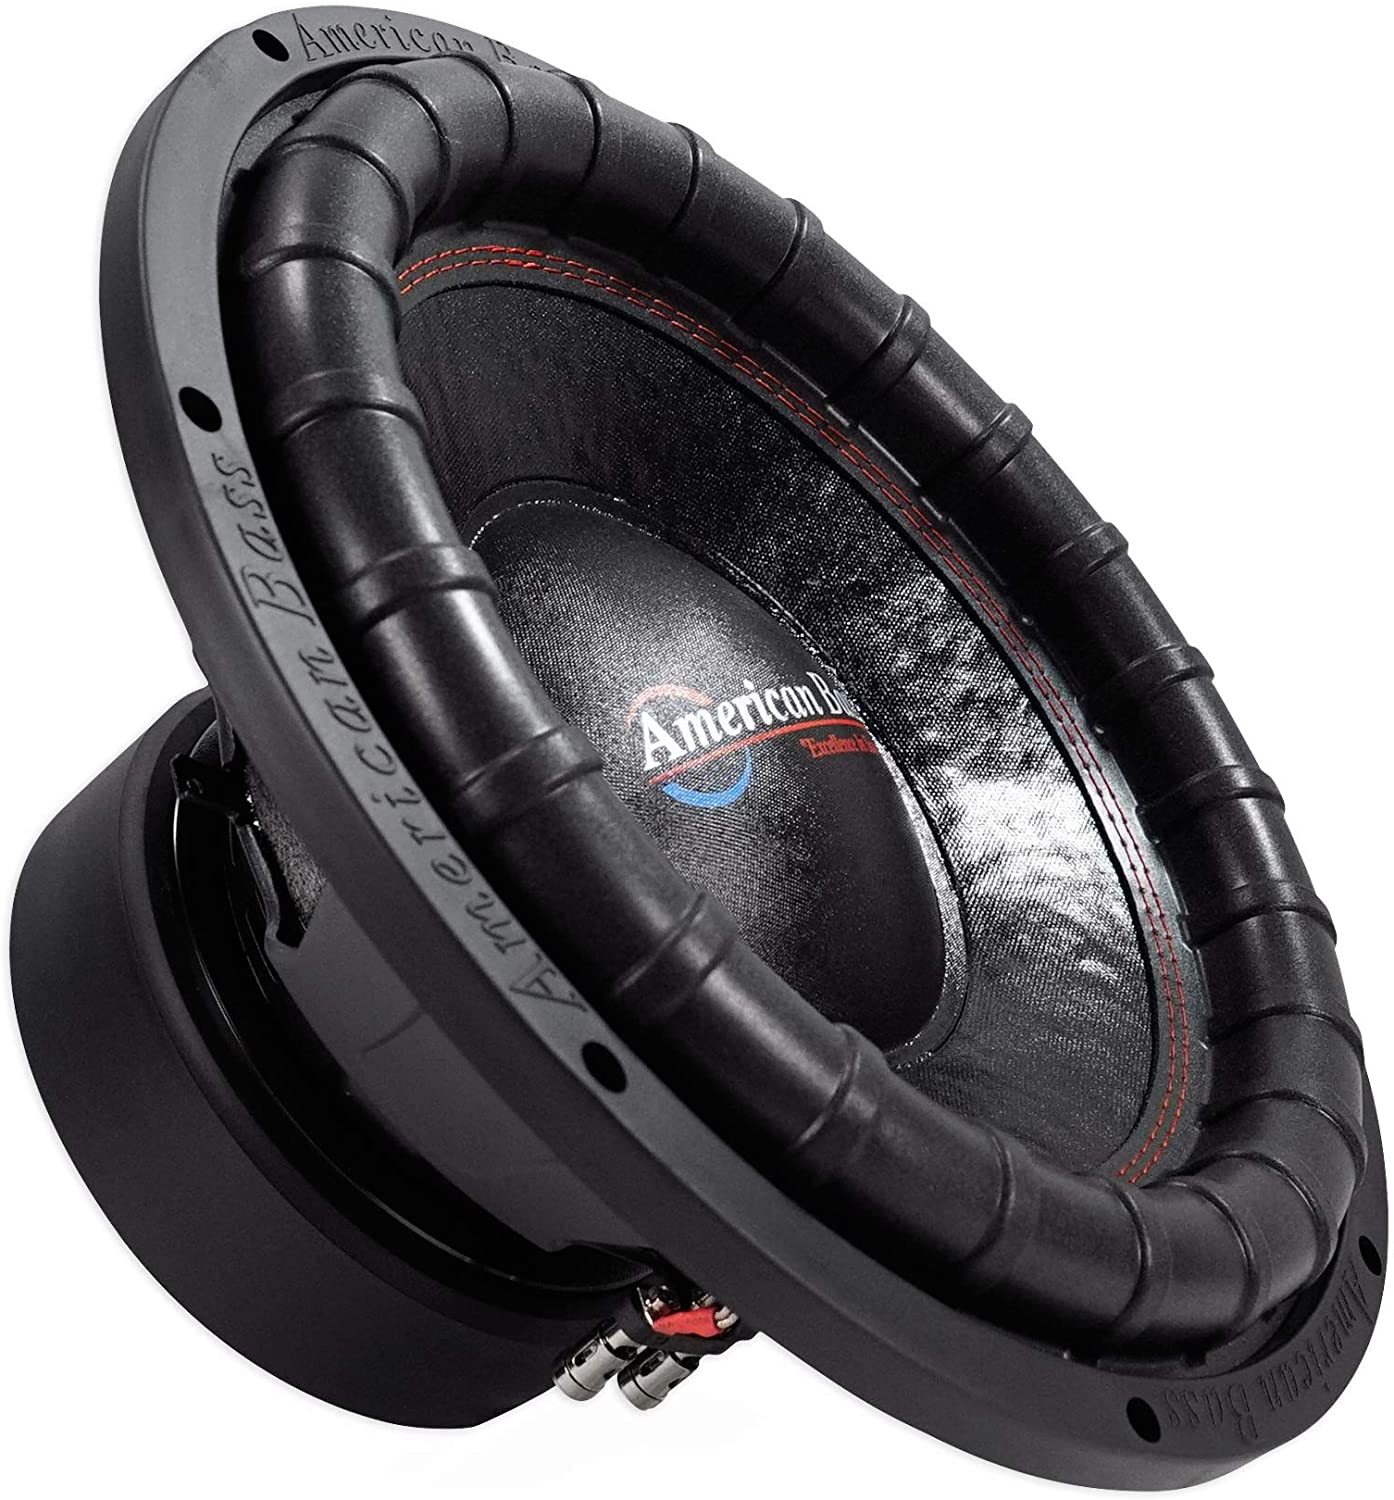 American Bass Elite Series Subwoofer